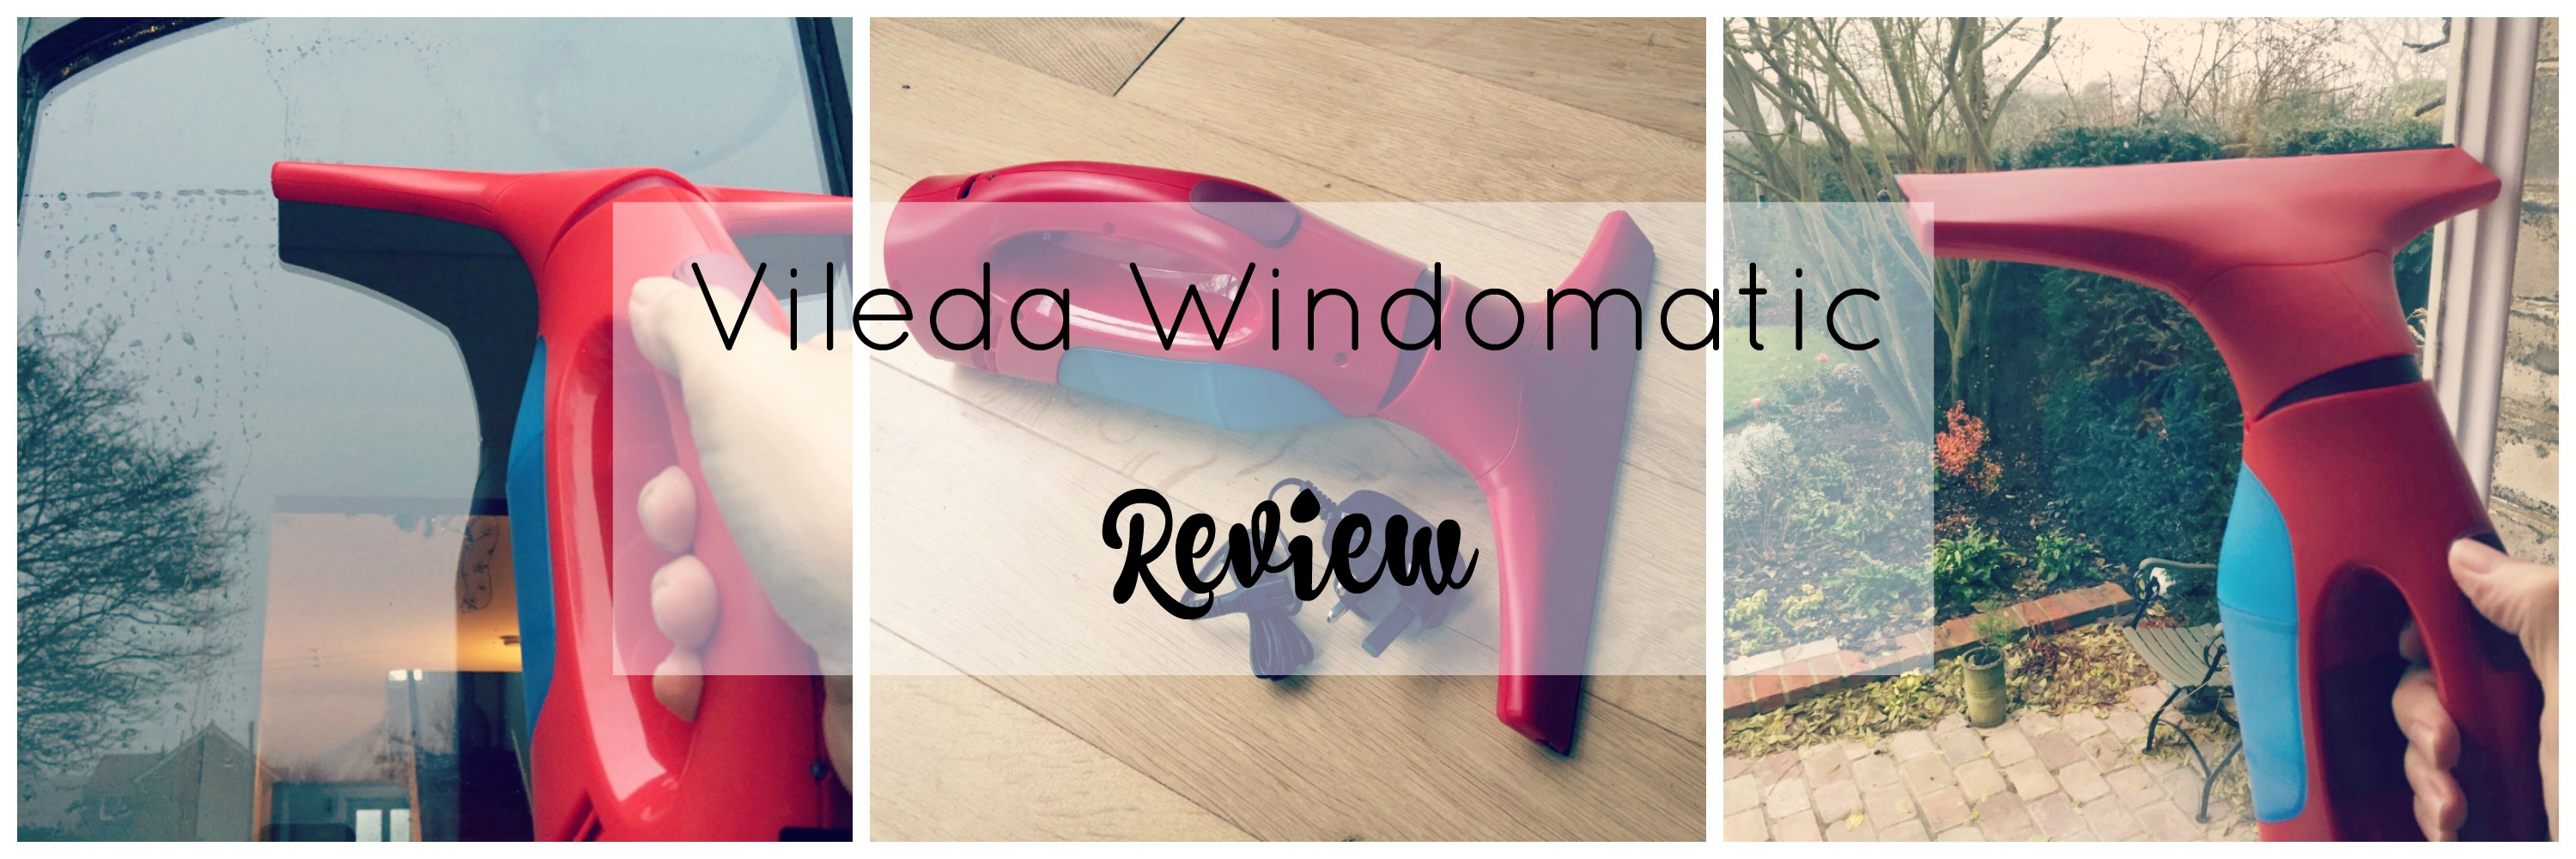 vileda-windomatic-review-title